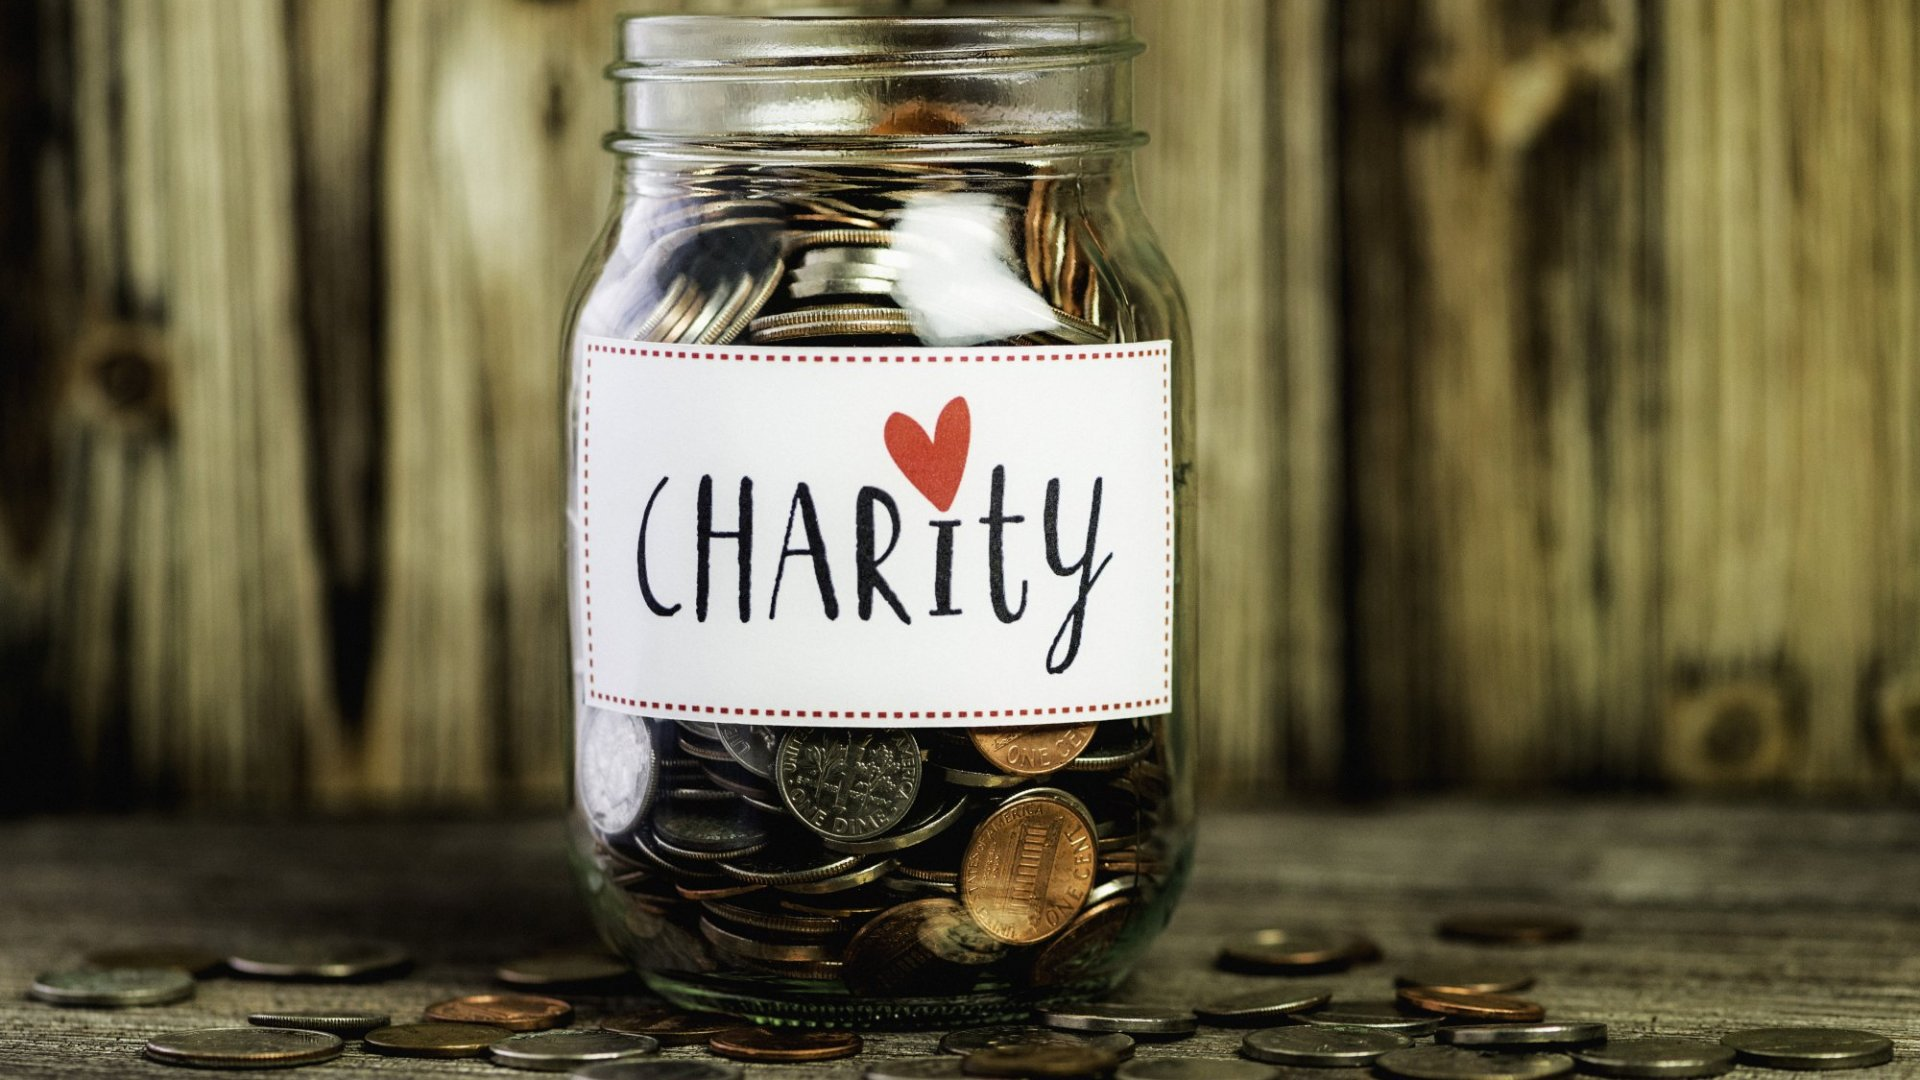 Here's Why $128 Is the Average Online Donation Amount